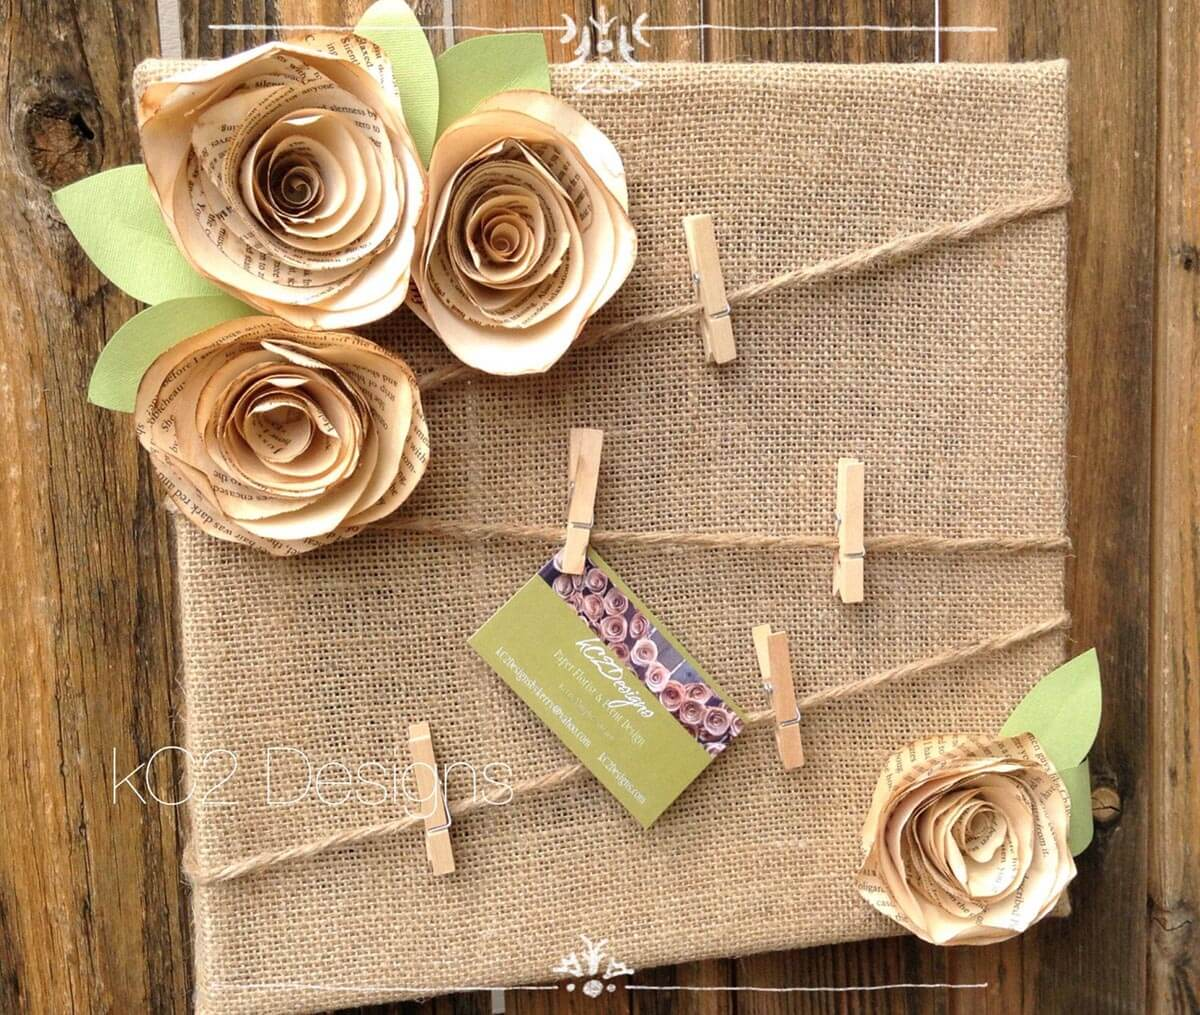 Burlap Message Board with Paper Flowers